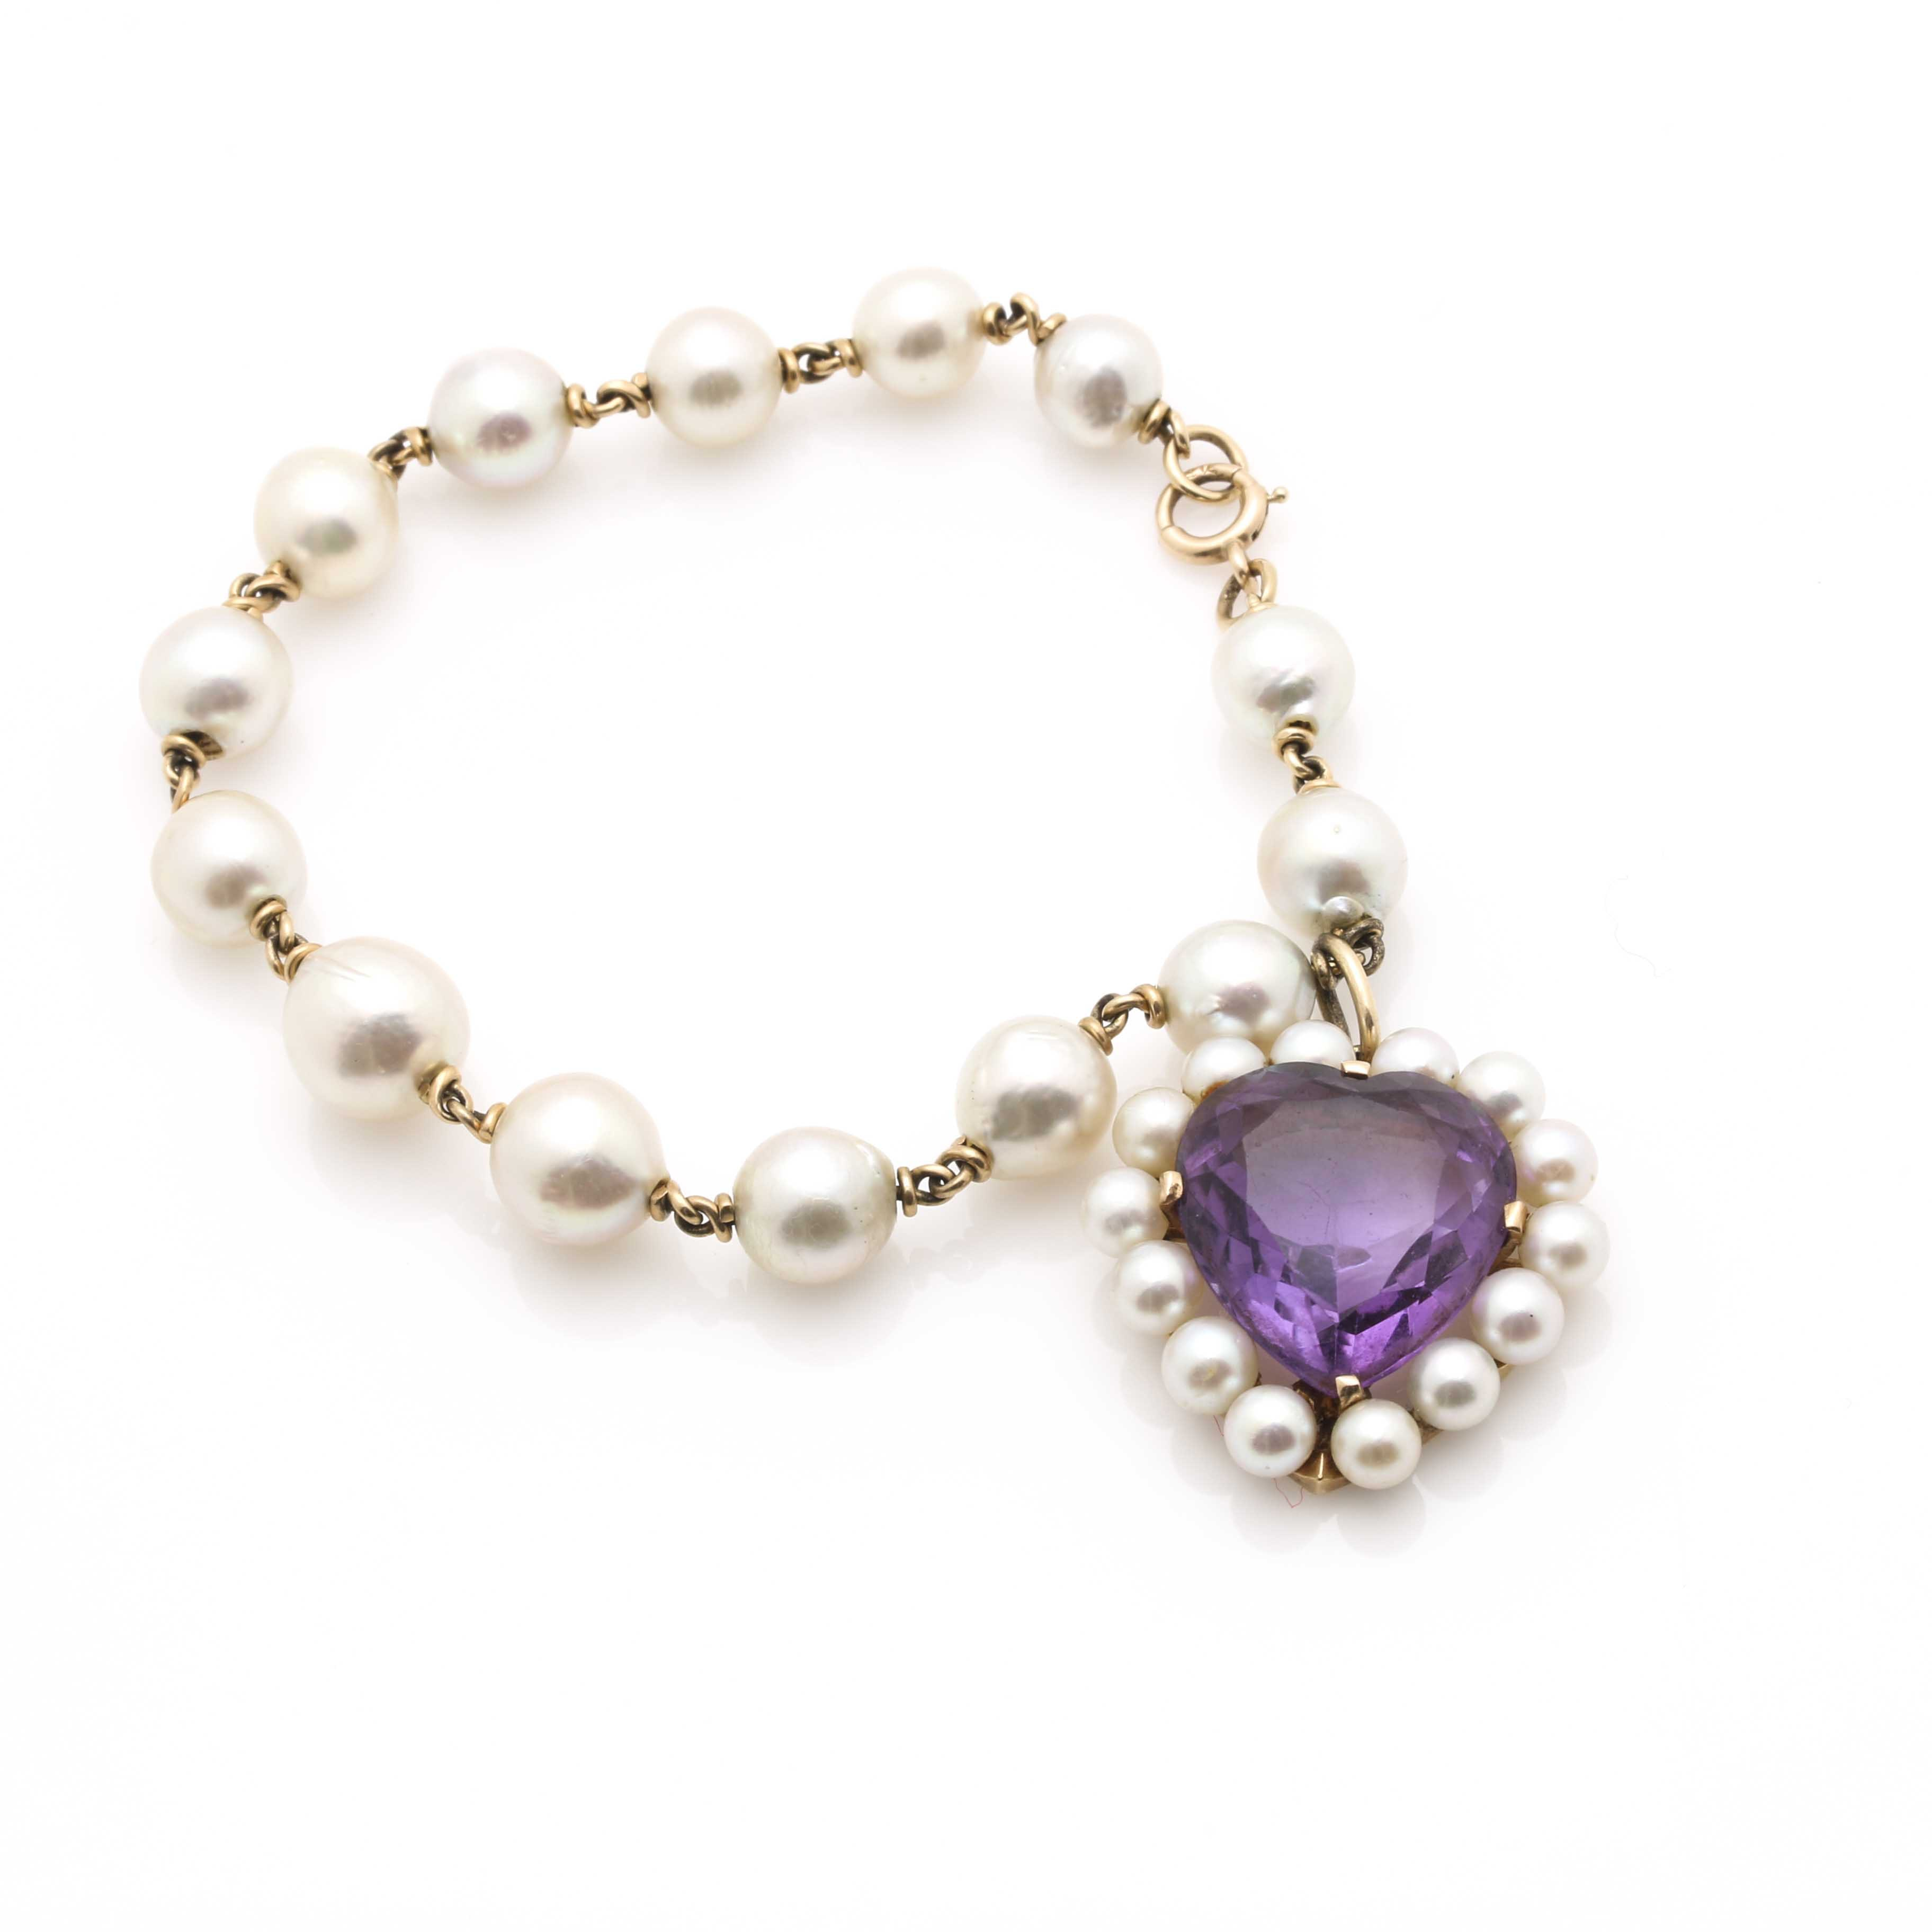 14K Yellow Gold Pearl Strand Bracelet With Amethyst and Pearl Heart Pendant